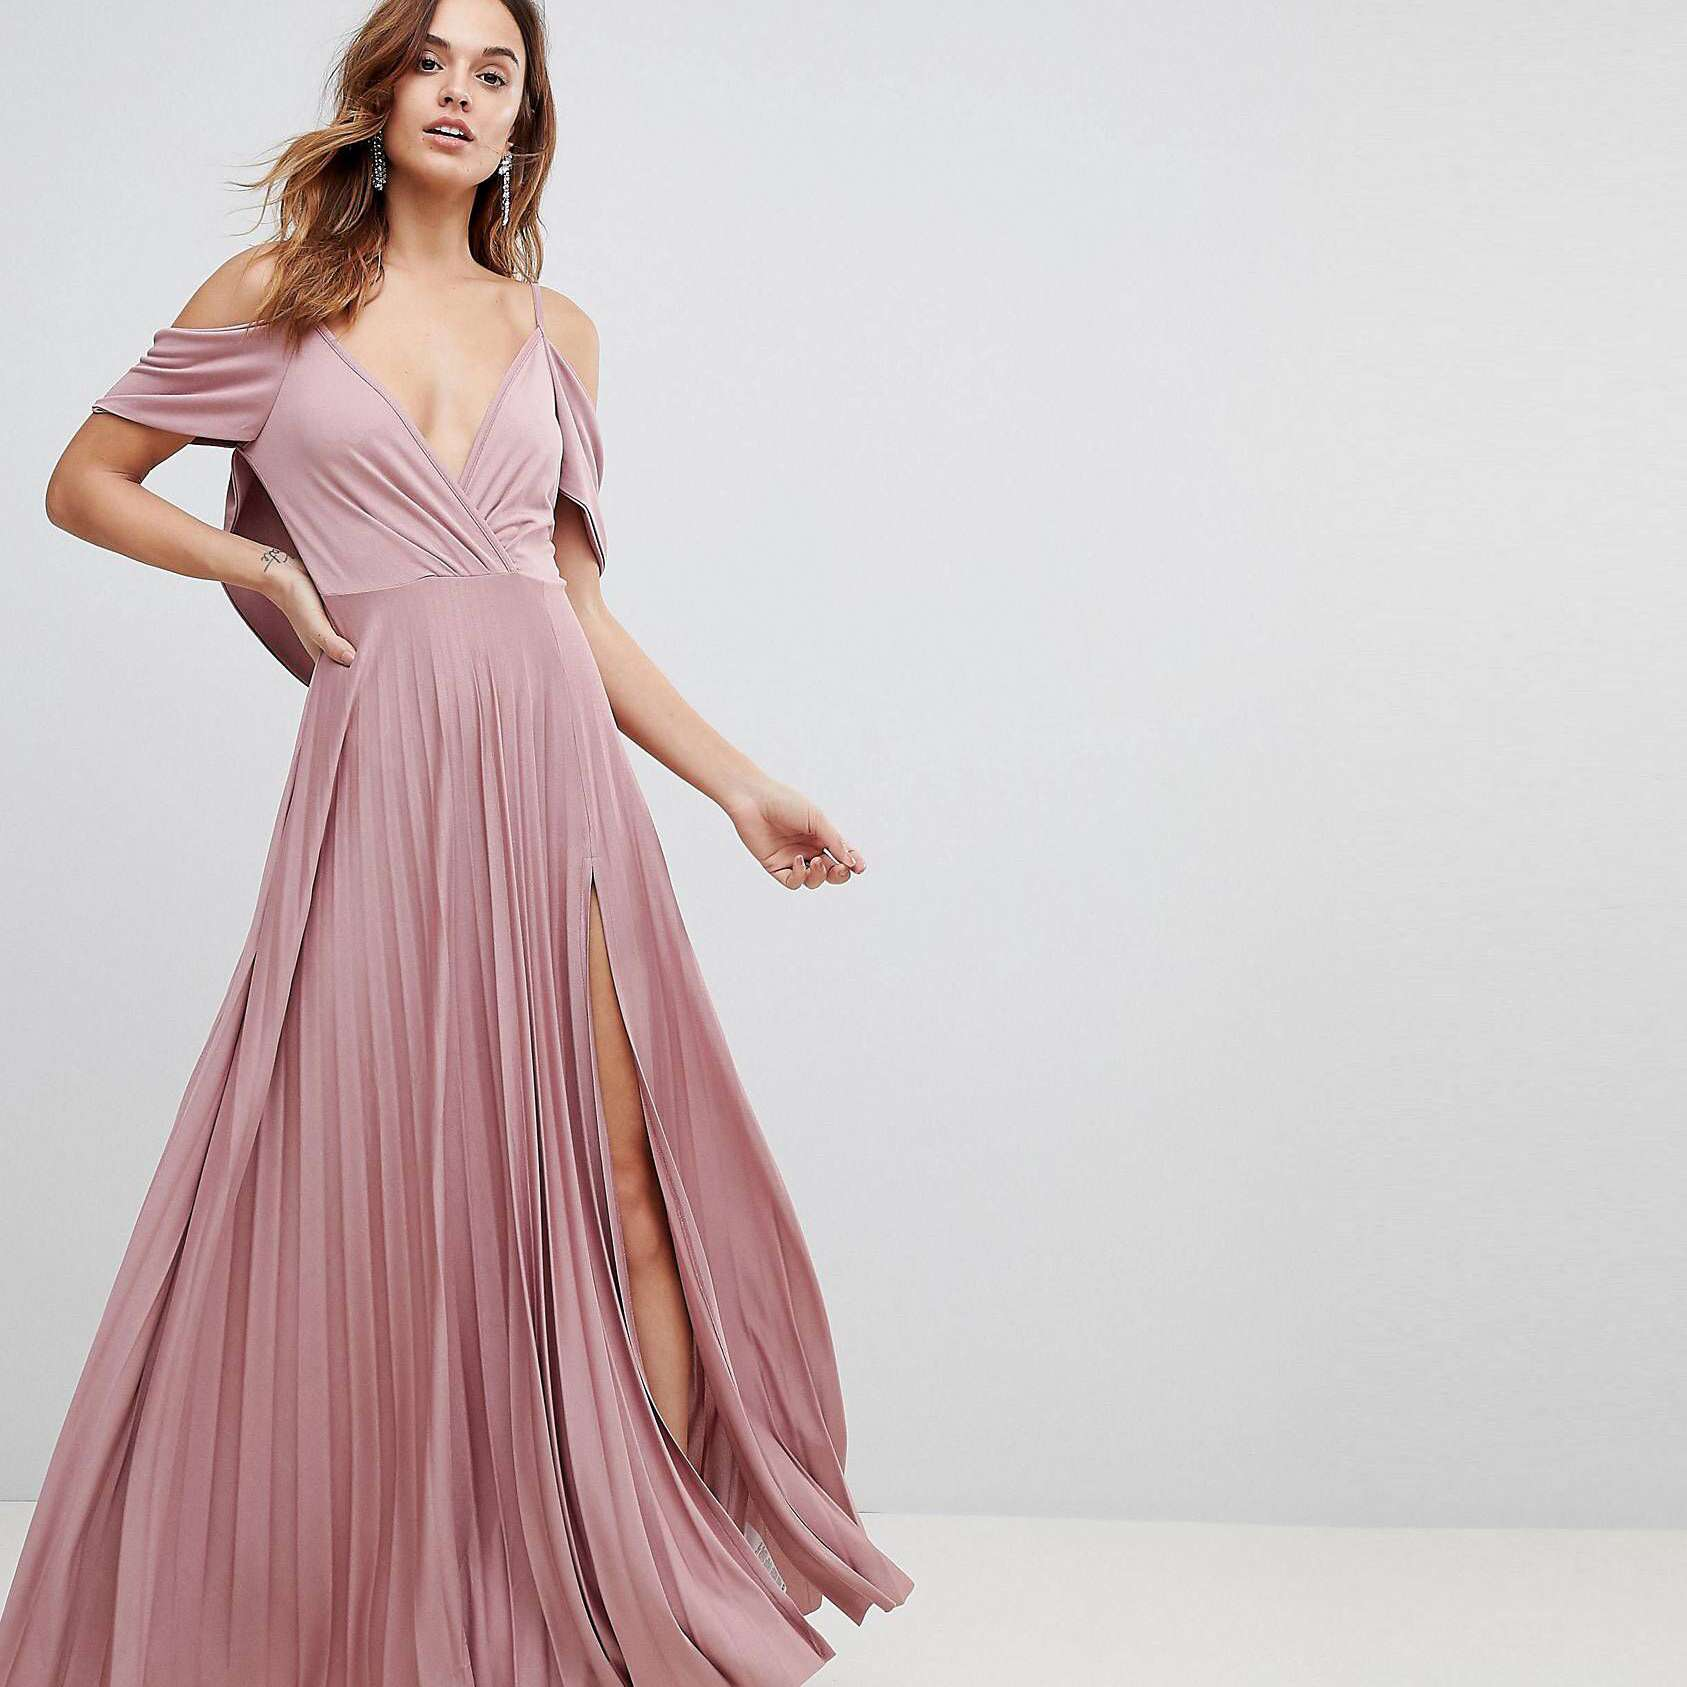 31 Affordable Bridesmaid Dresses Under $100